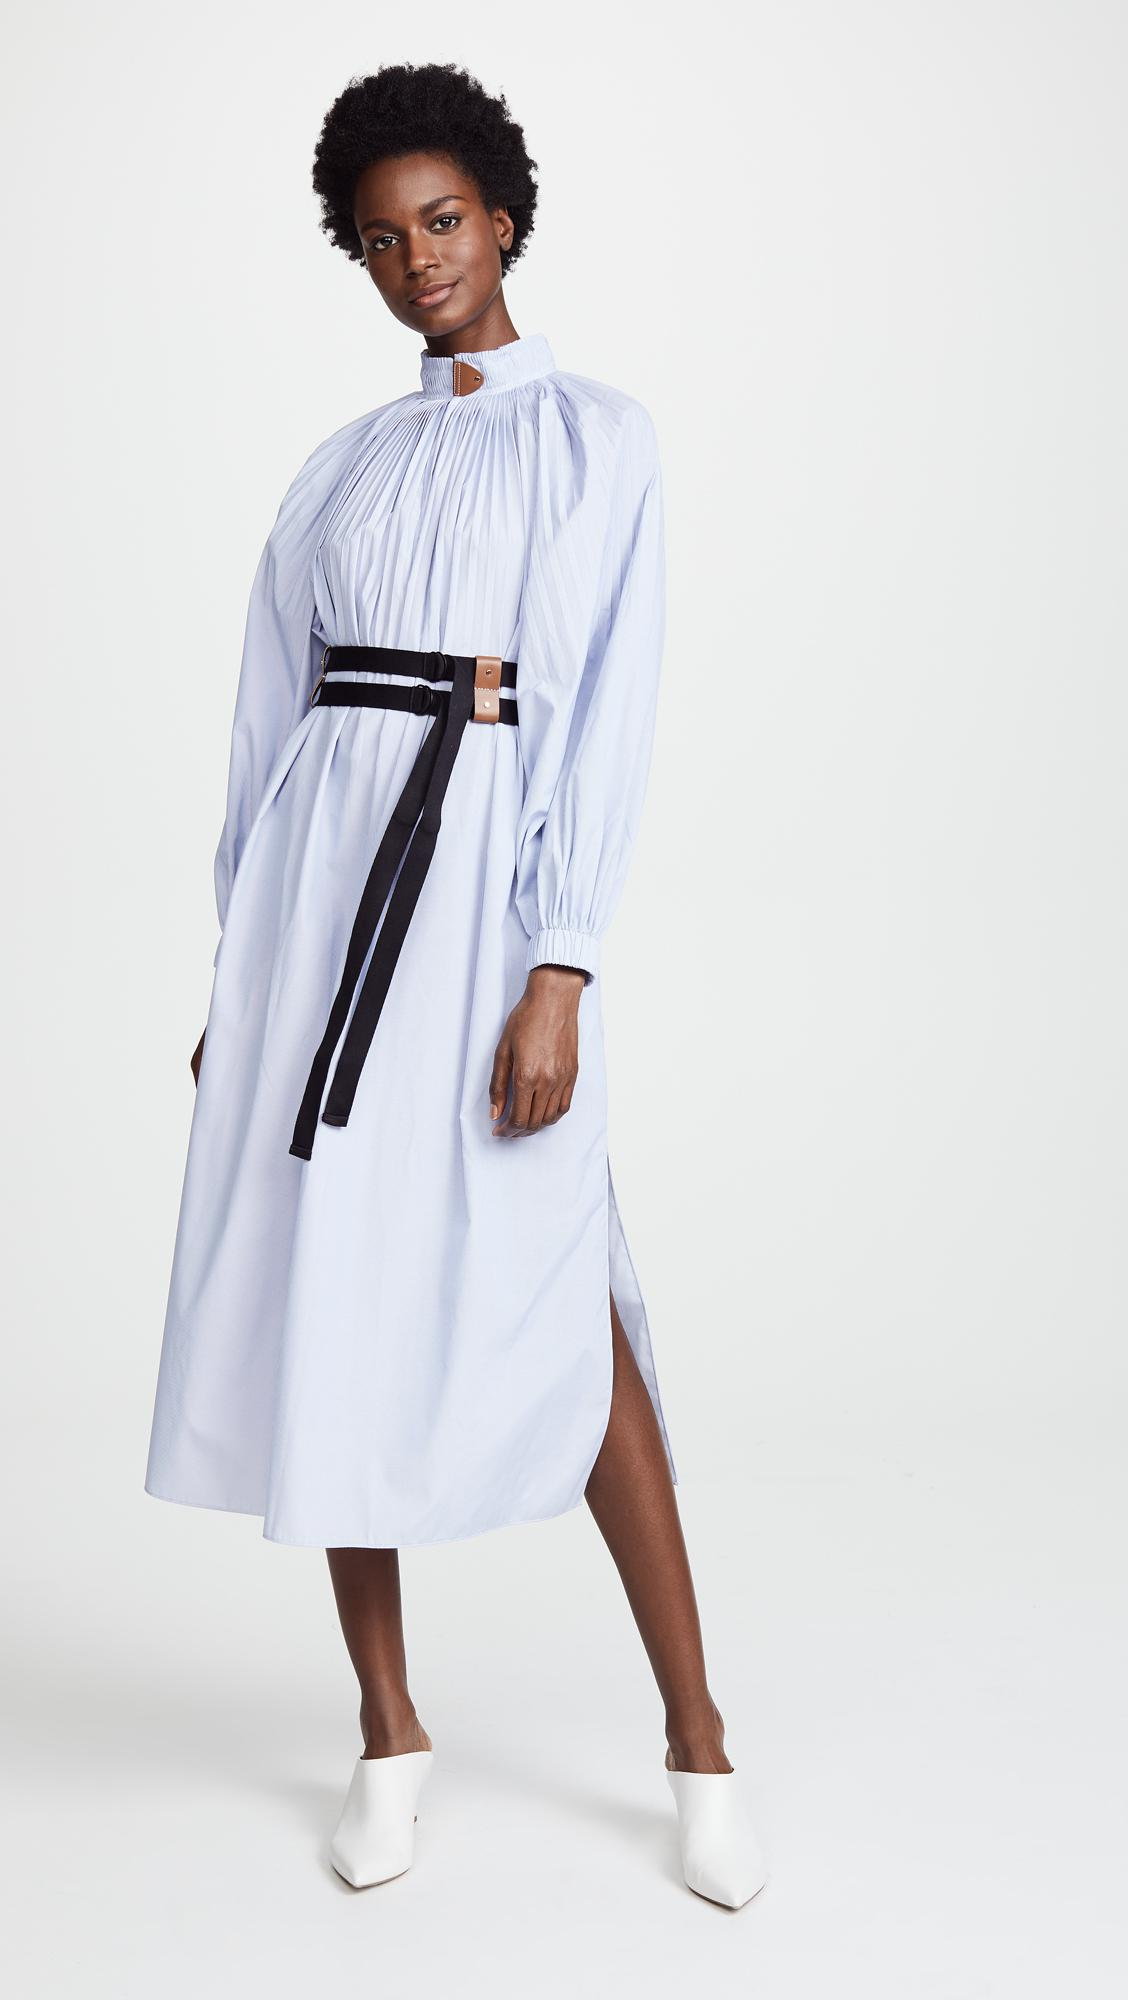 ef88219749a8a8 Tibi Isabelle Shirting Dress in Blue - Lyst